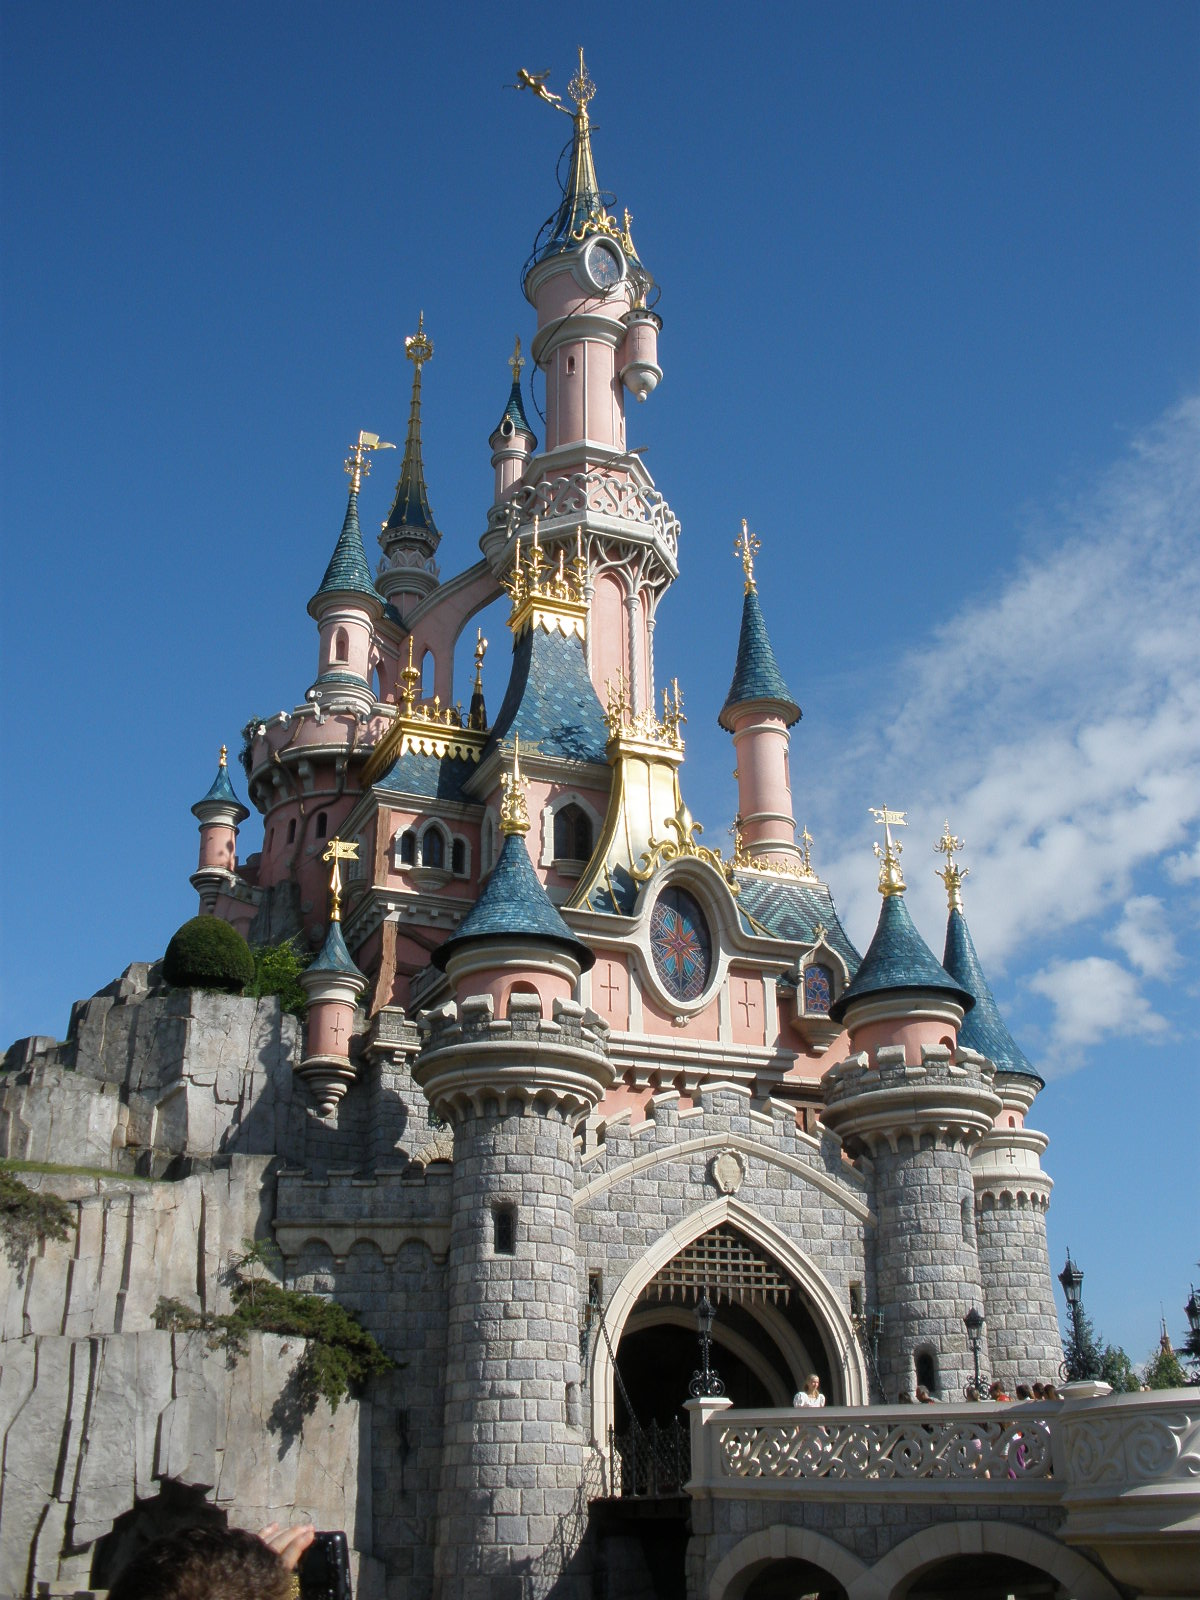 how to get to disneyland paris by train from london